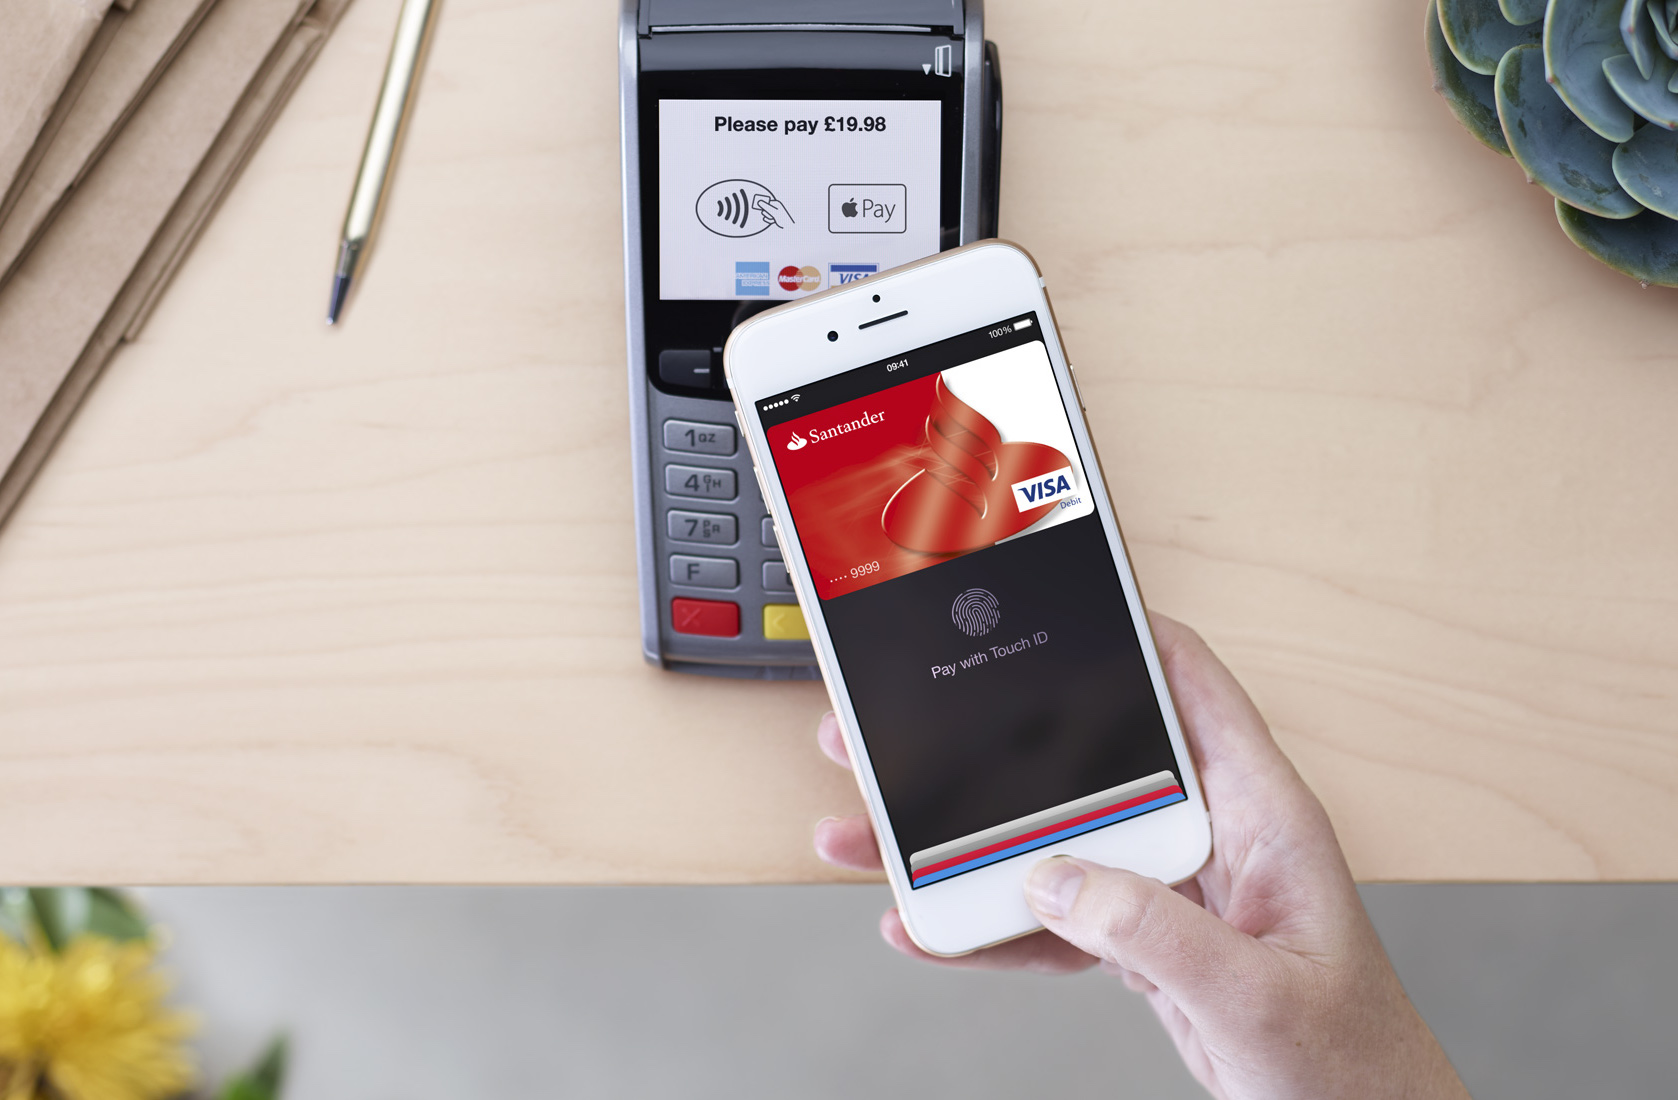 apple pay 6 days ago apple pay support as expanded in several countries, including the us, japan, and spain.